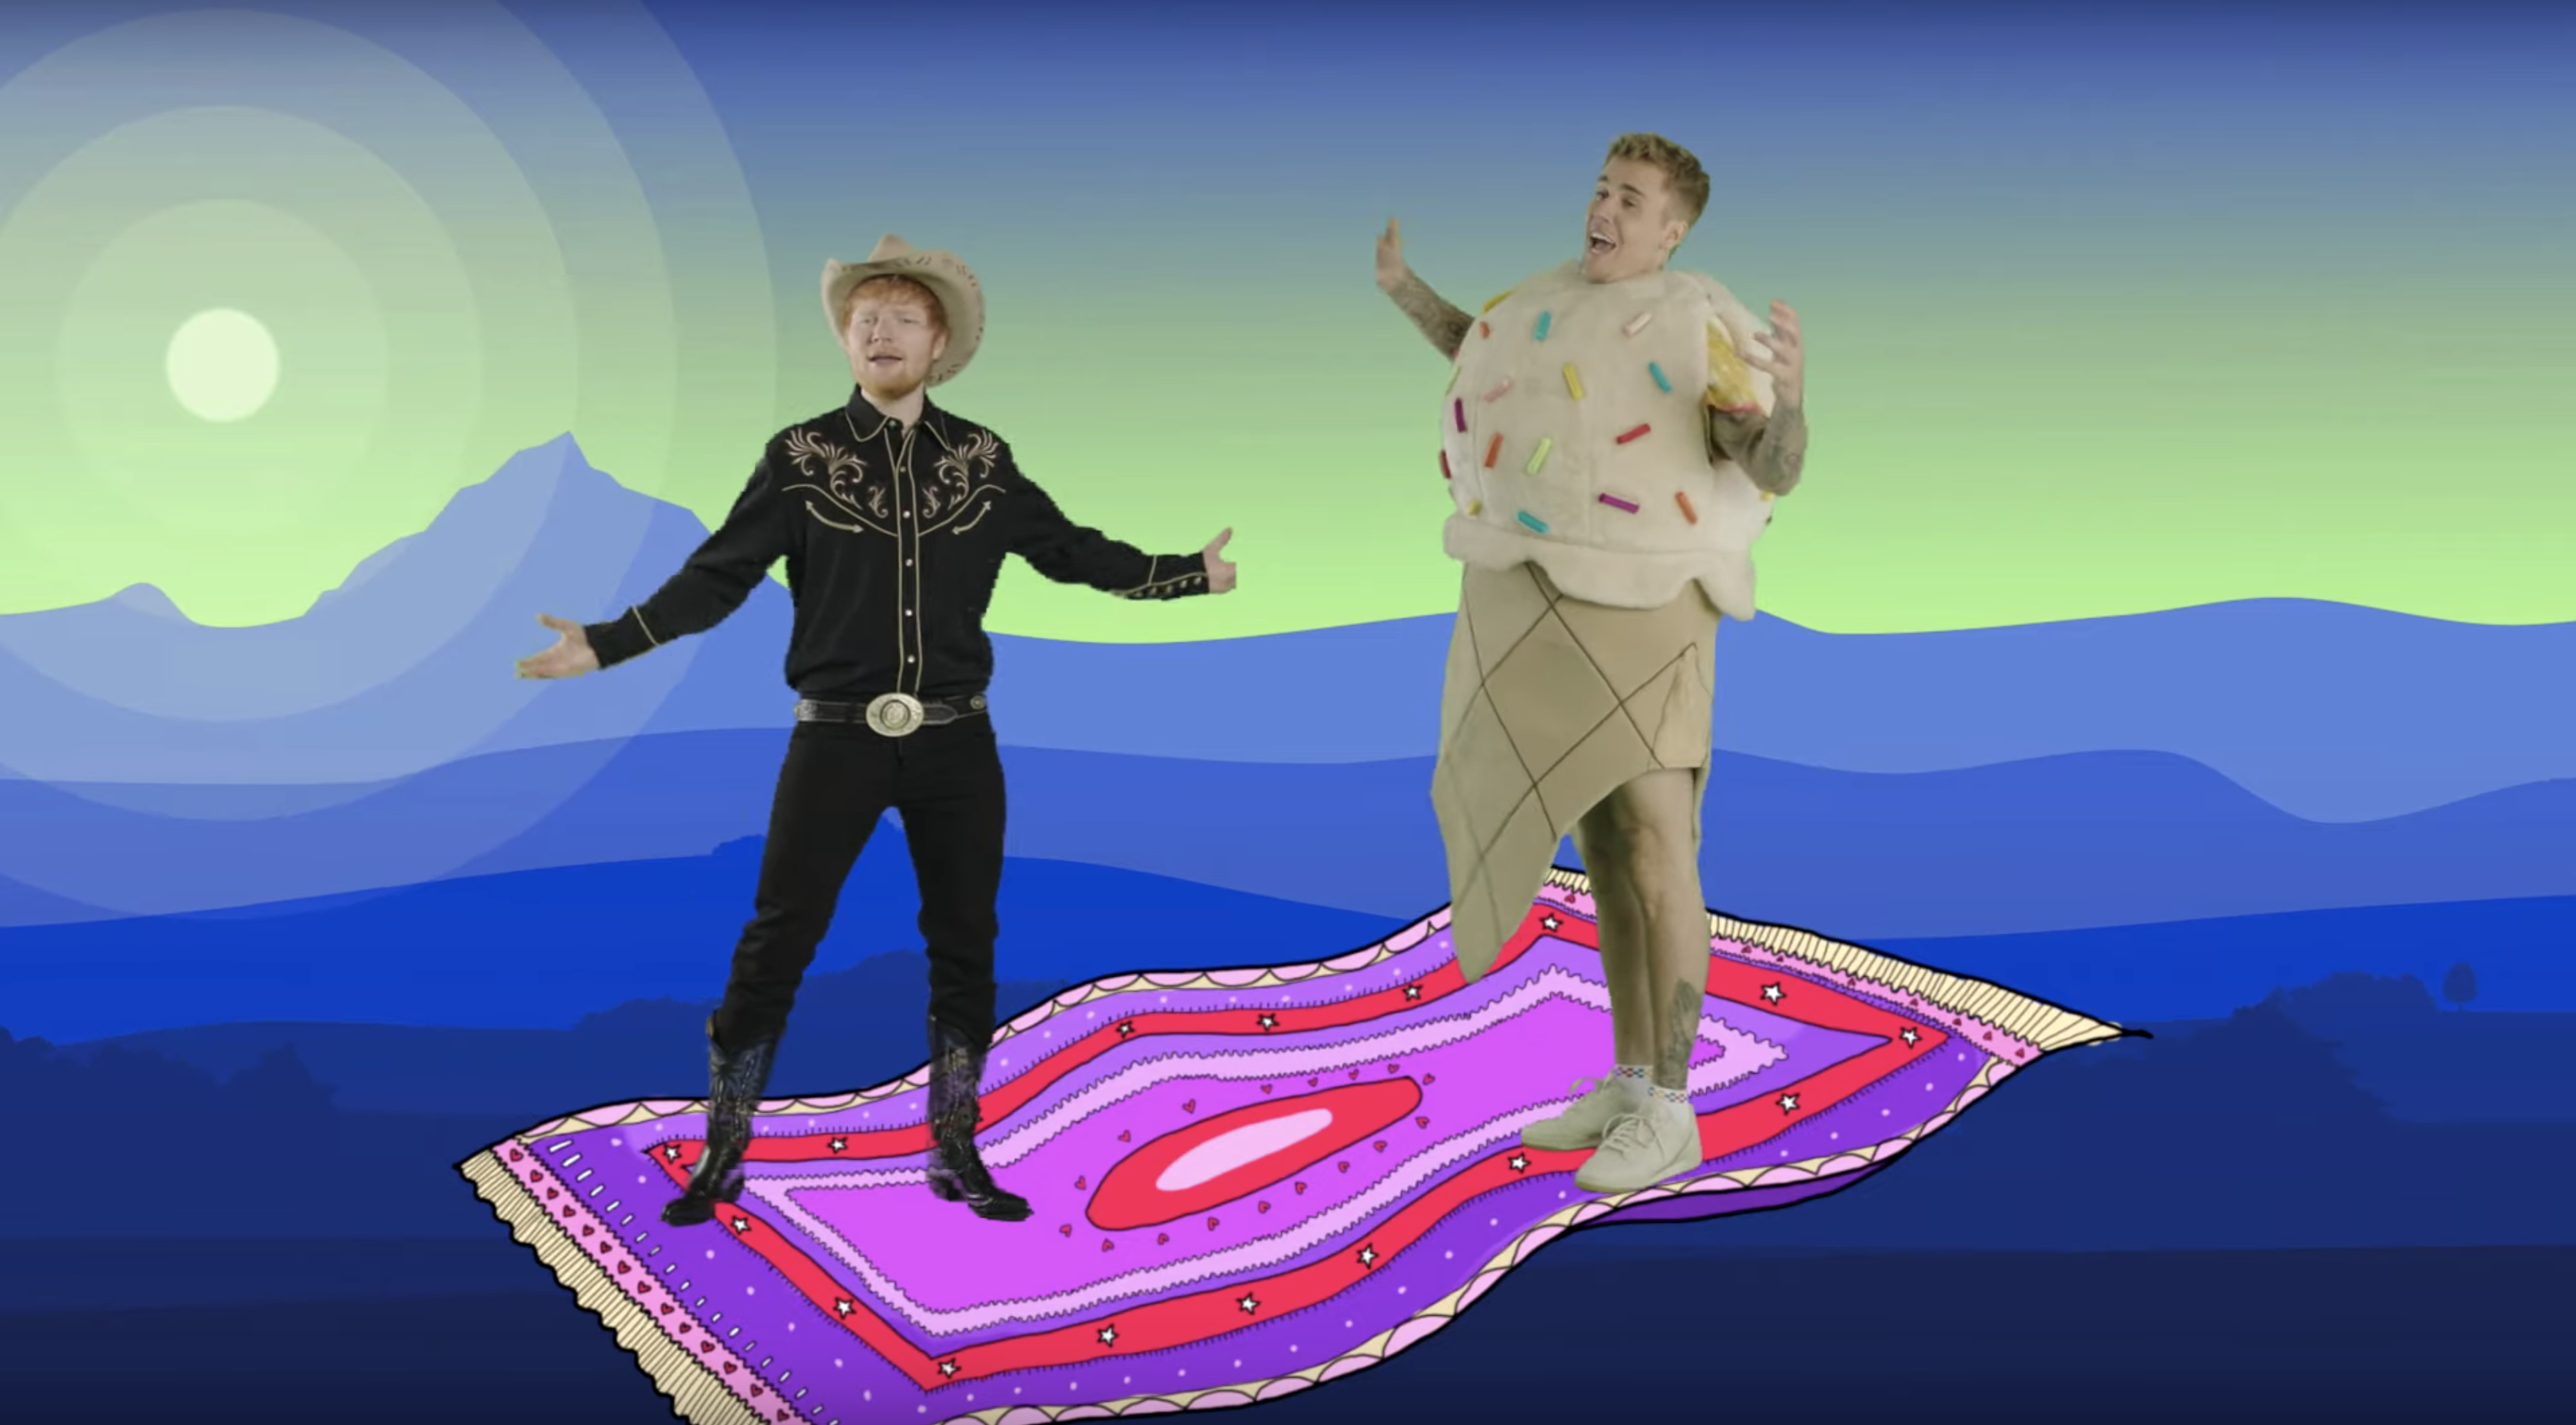 Justin Bieber and Ed Sheeran's 'I Don't Care' Music Video Is the Trippiest Thing